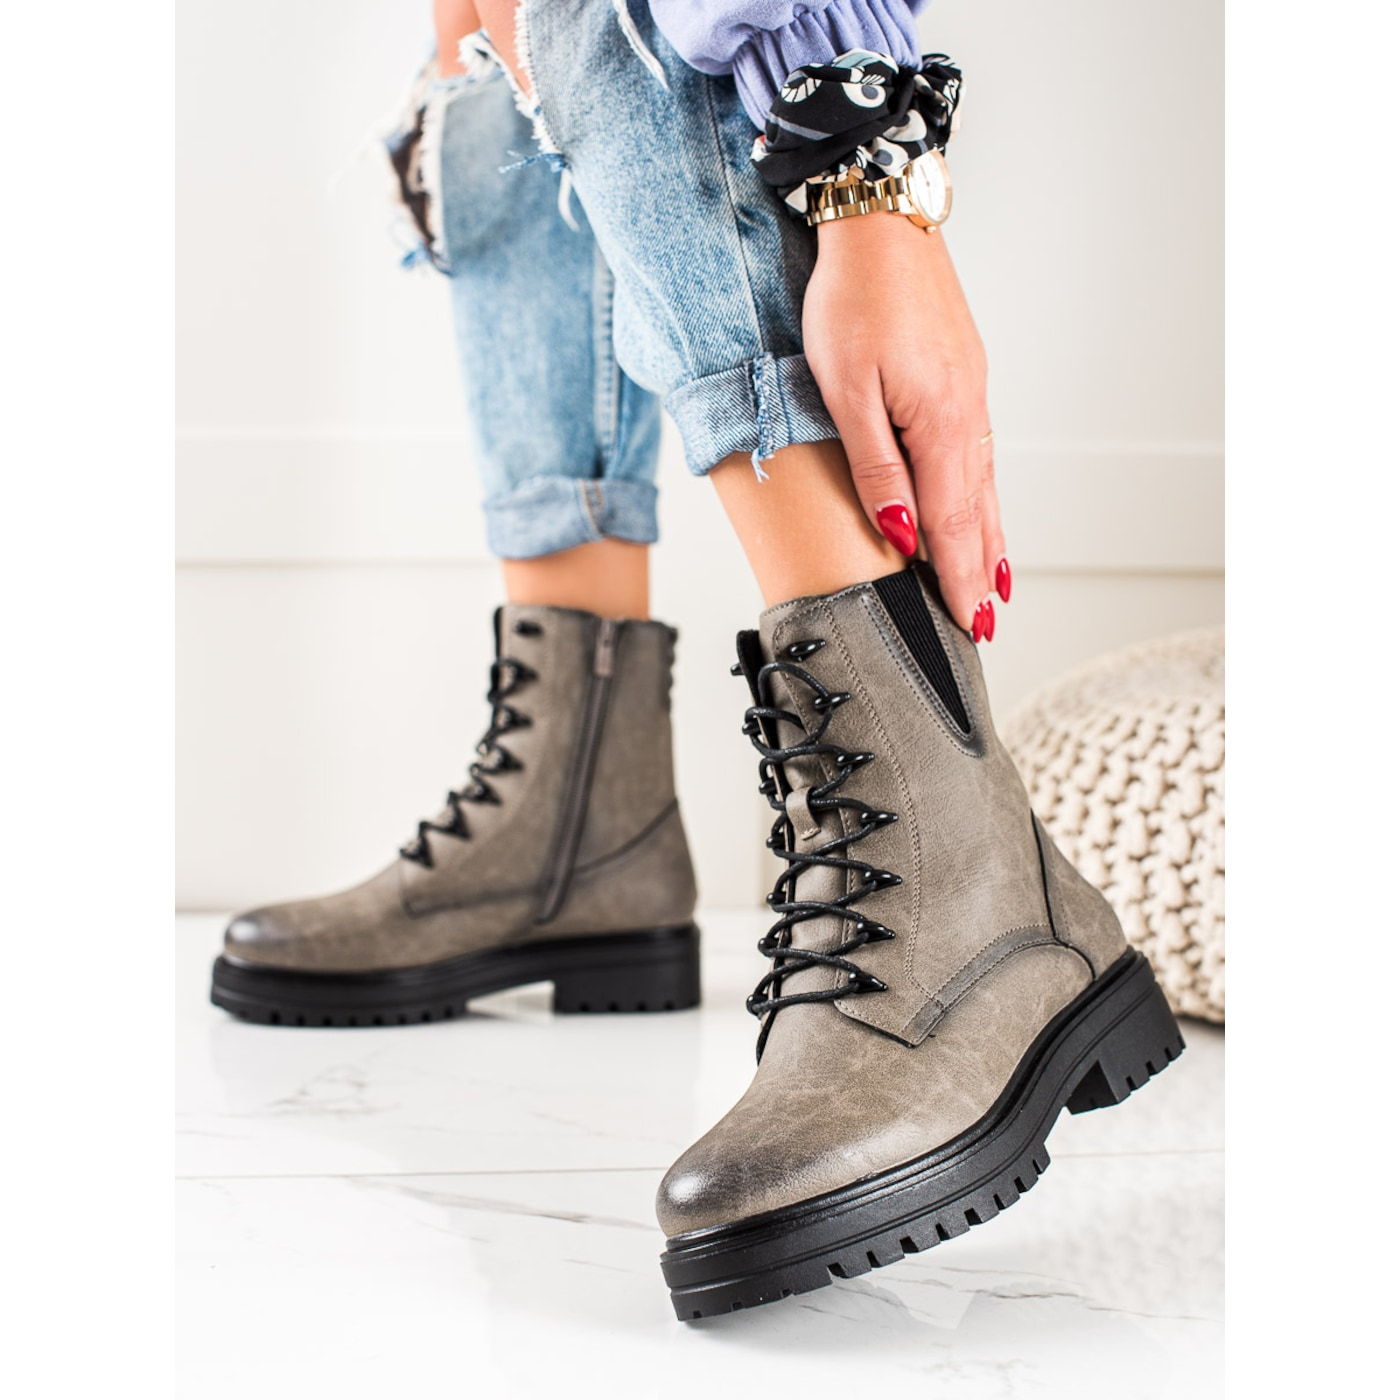 SERGIO LEONE LACE-UP WORKERY ANKLE BOOTS WITH PATTERN